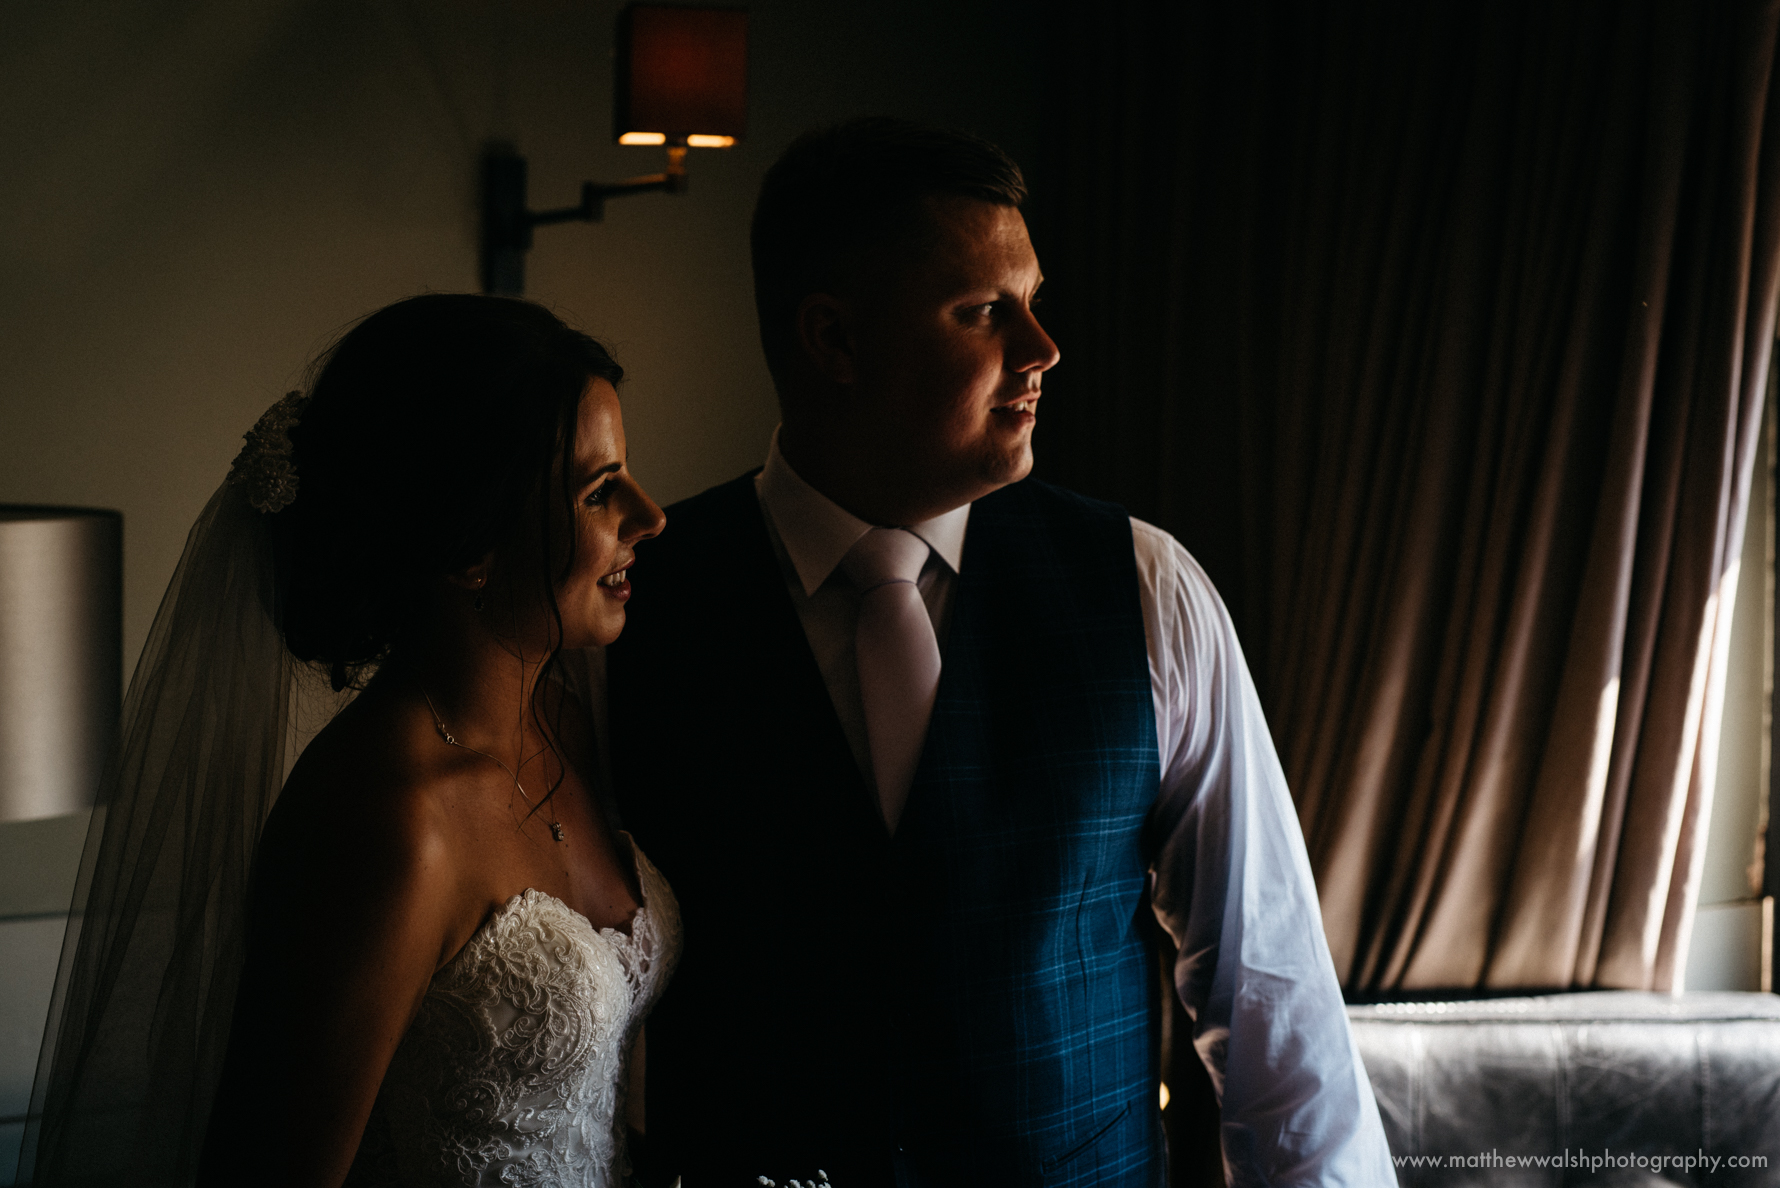 The happy couple in the glow of natural light